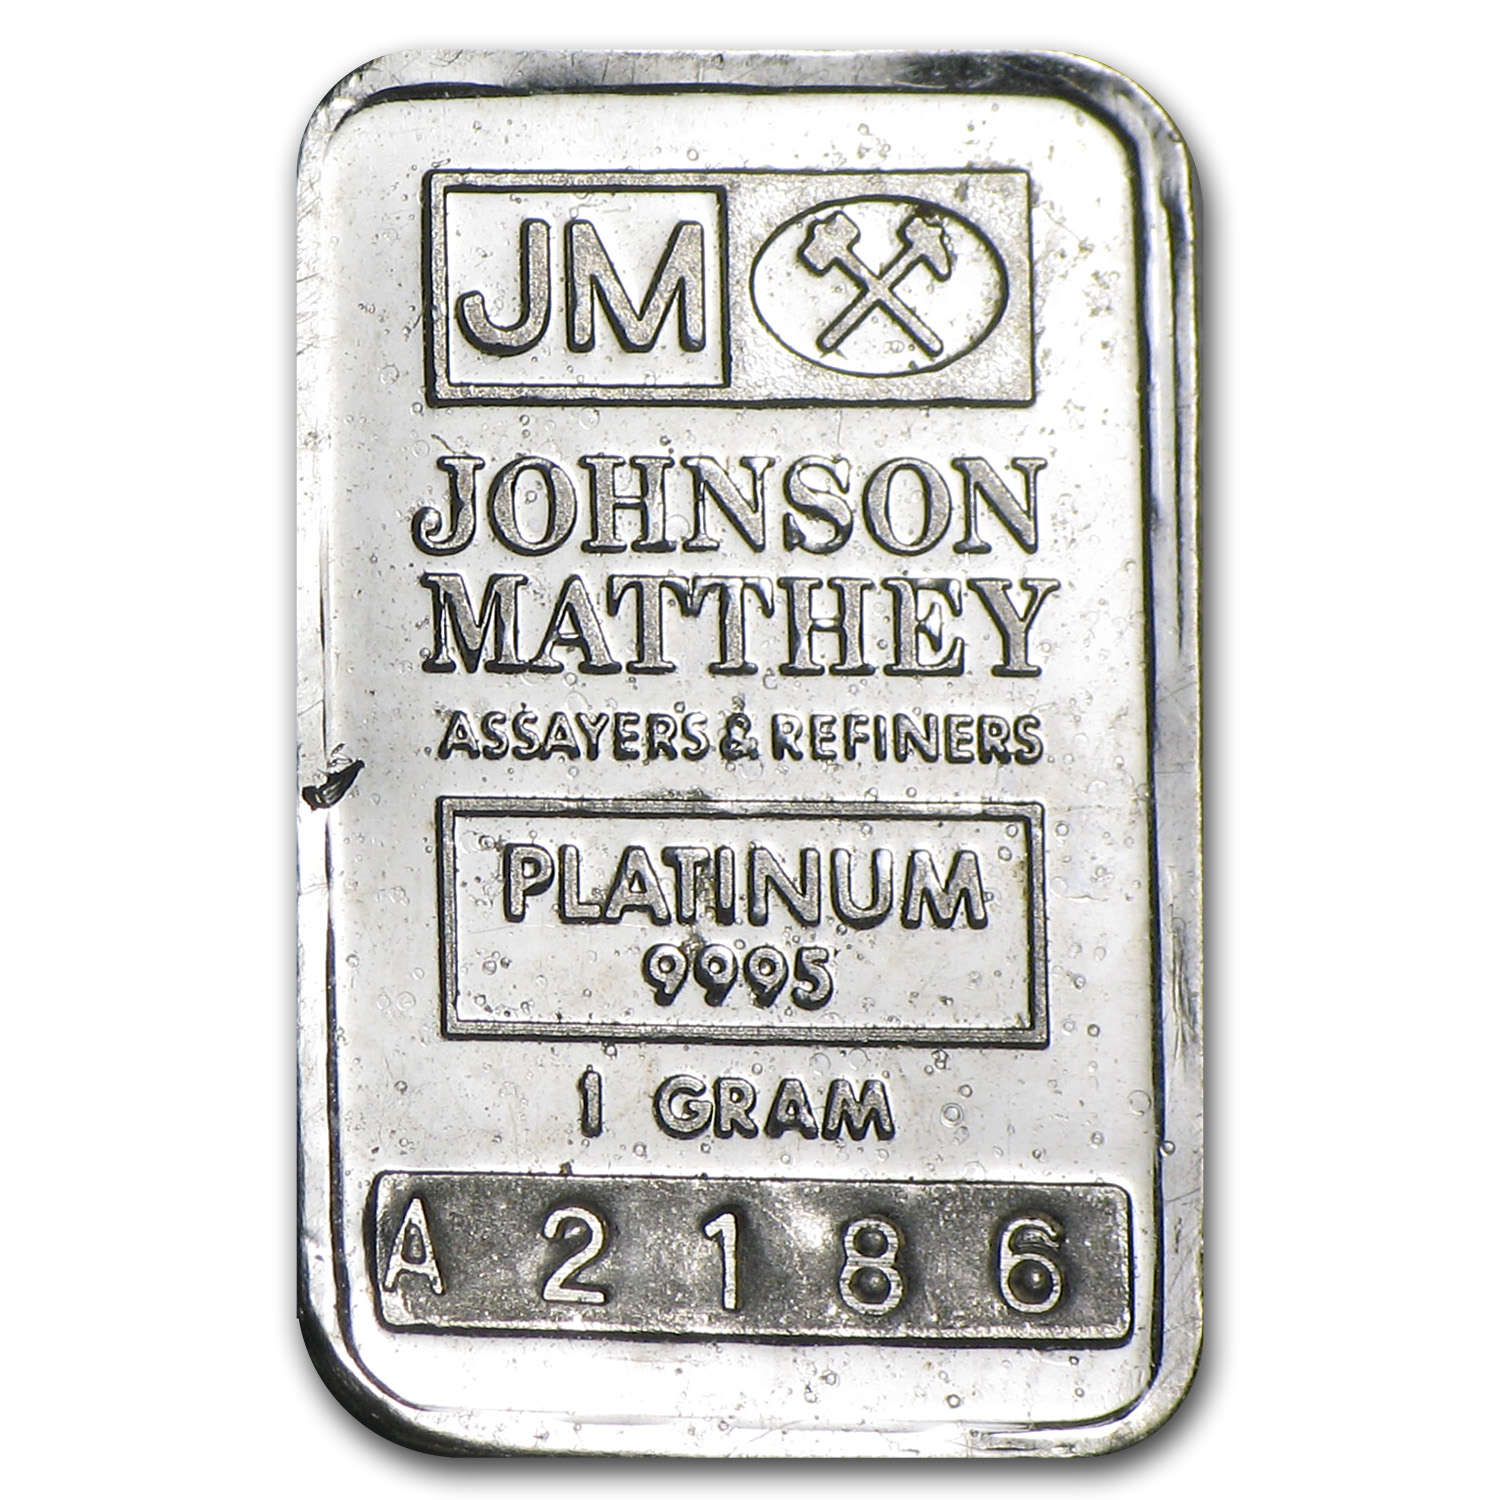 1 gram Platinum Johnson Matthey Bar